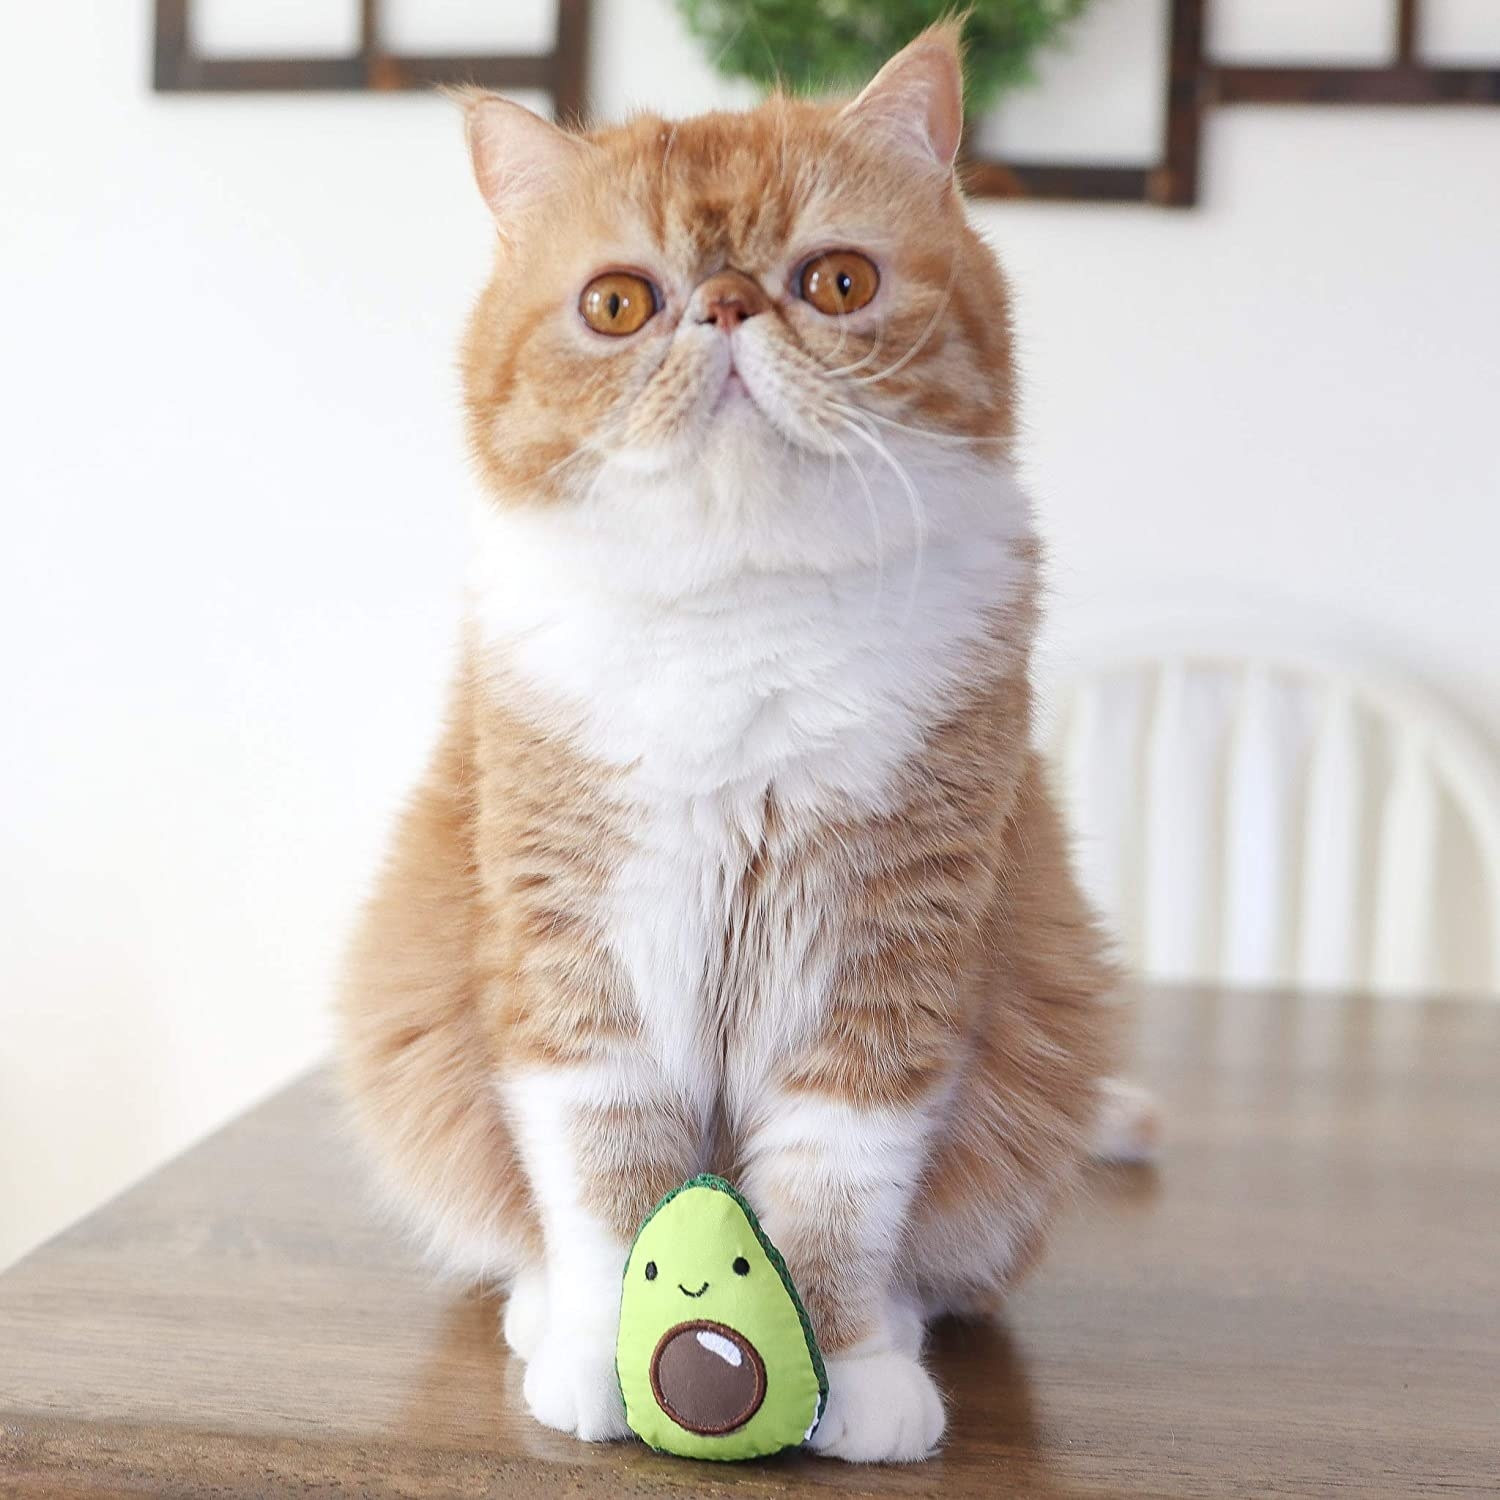 An orange and white cat with a stuffed green and brown avocado in front of it